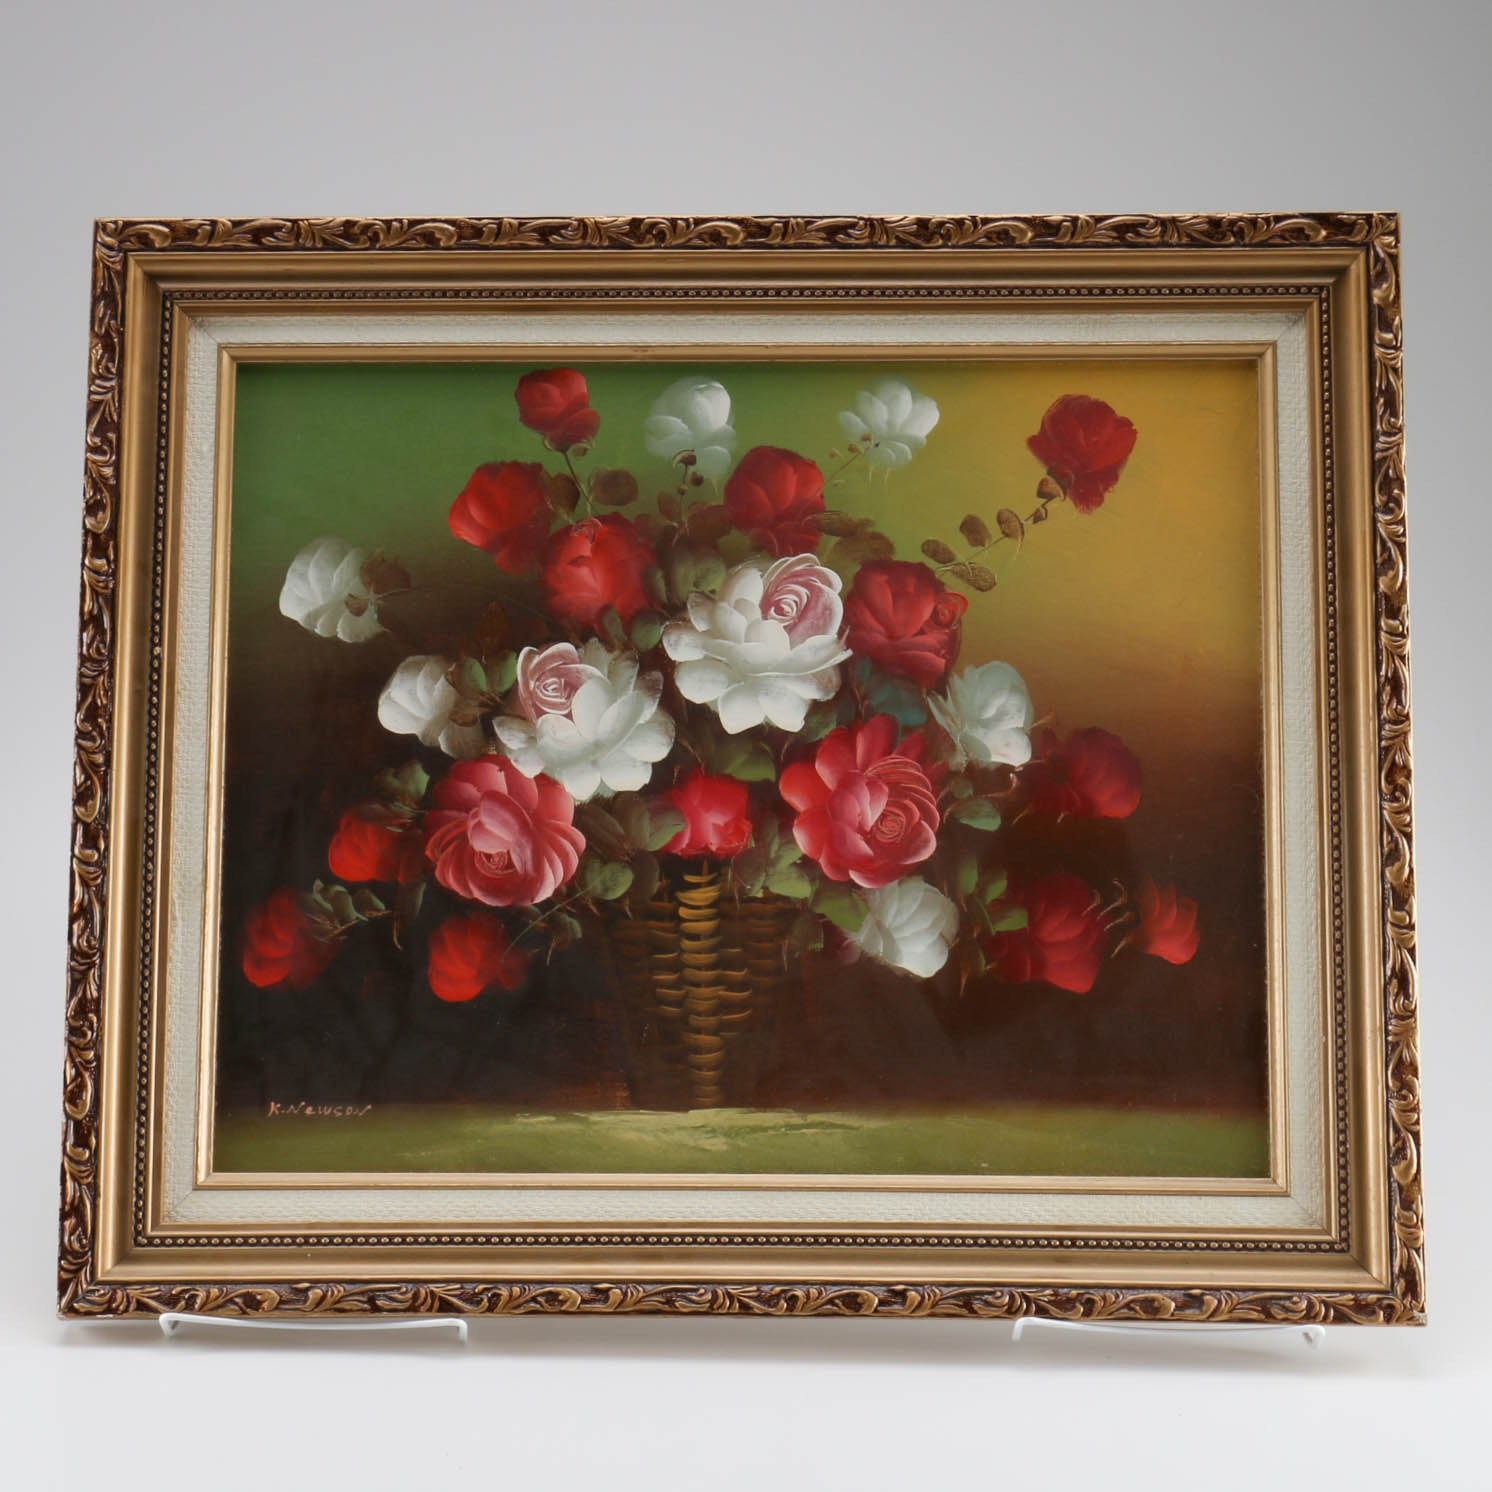 K. Newson Oil Painting Basket of Roses